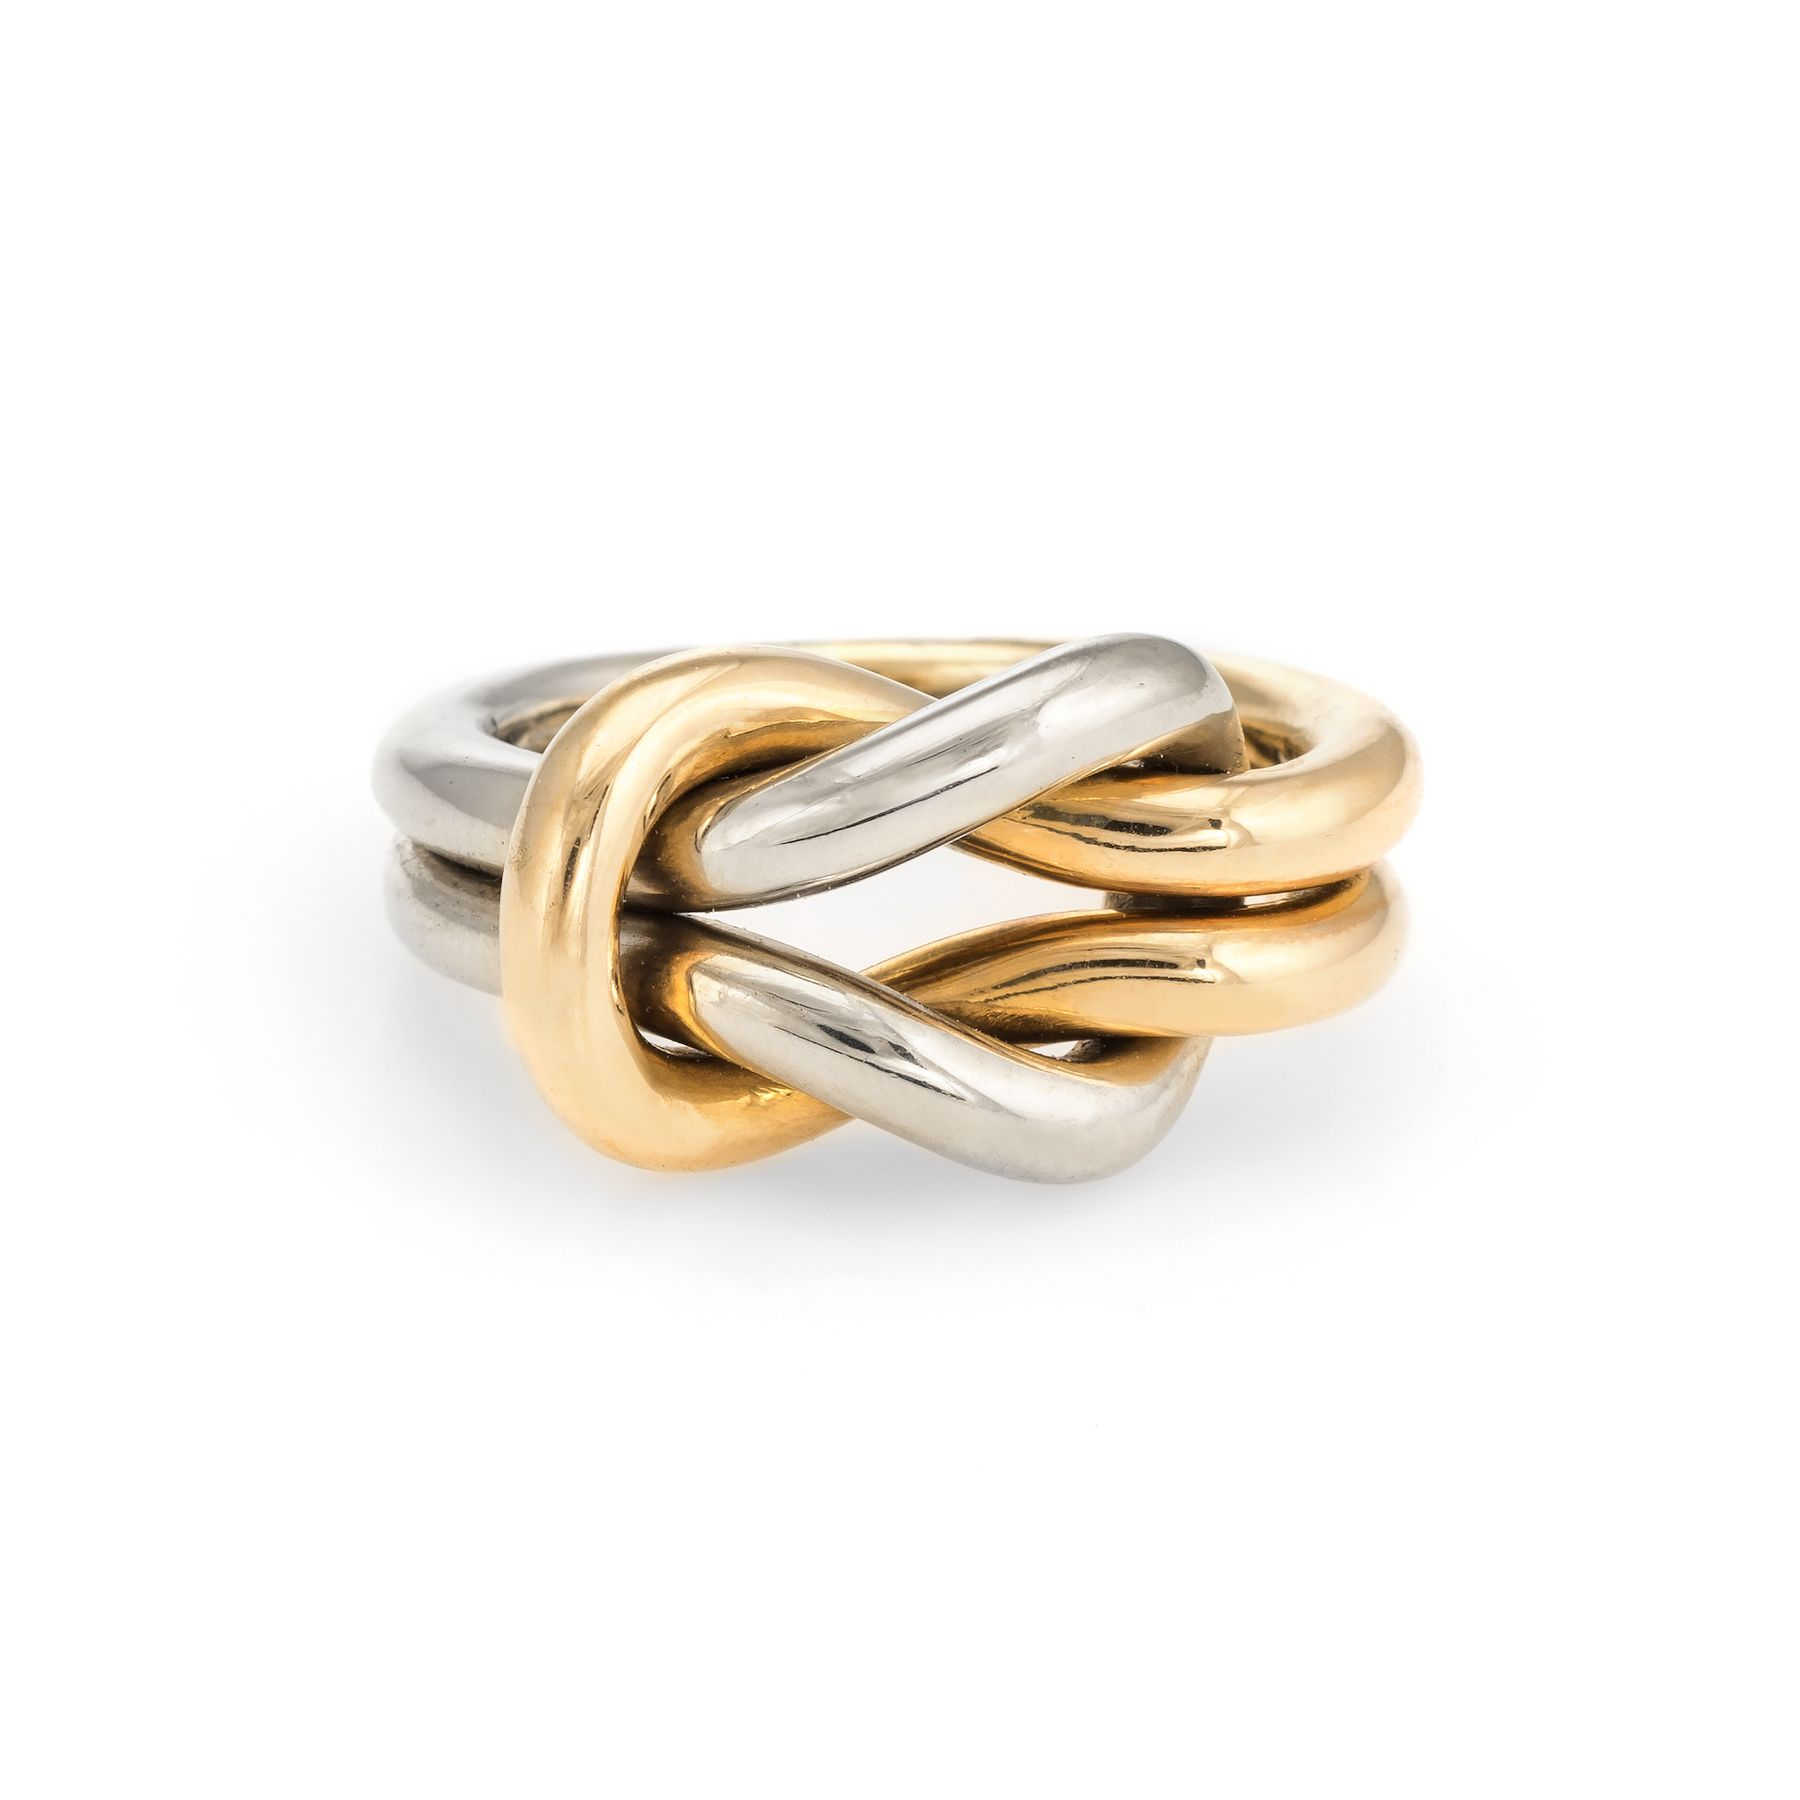 Jewel Tie Solid 14k Rose Yellow /& White Gold 15 Years Birthday Heart Ring Size 8.5